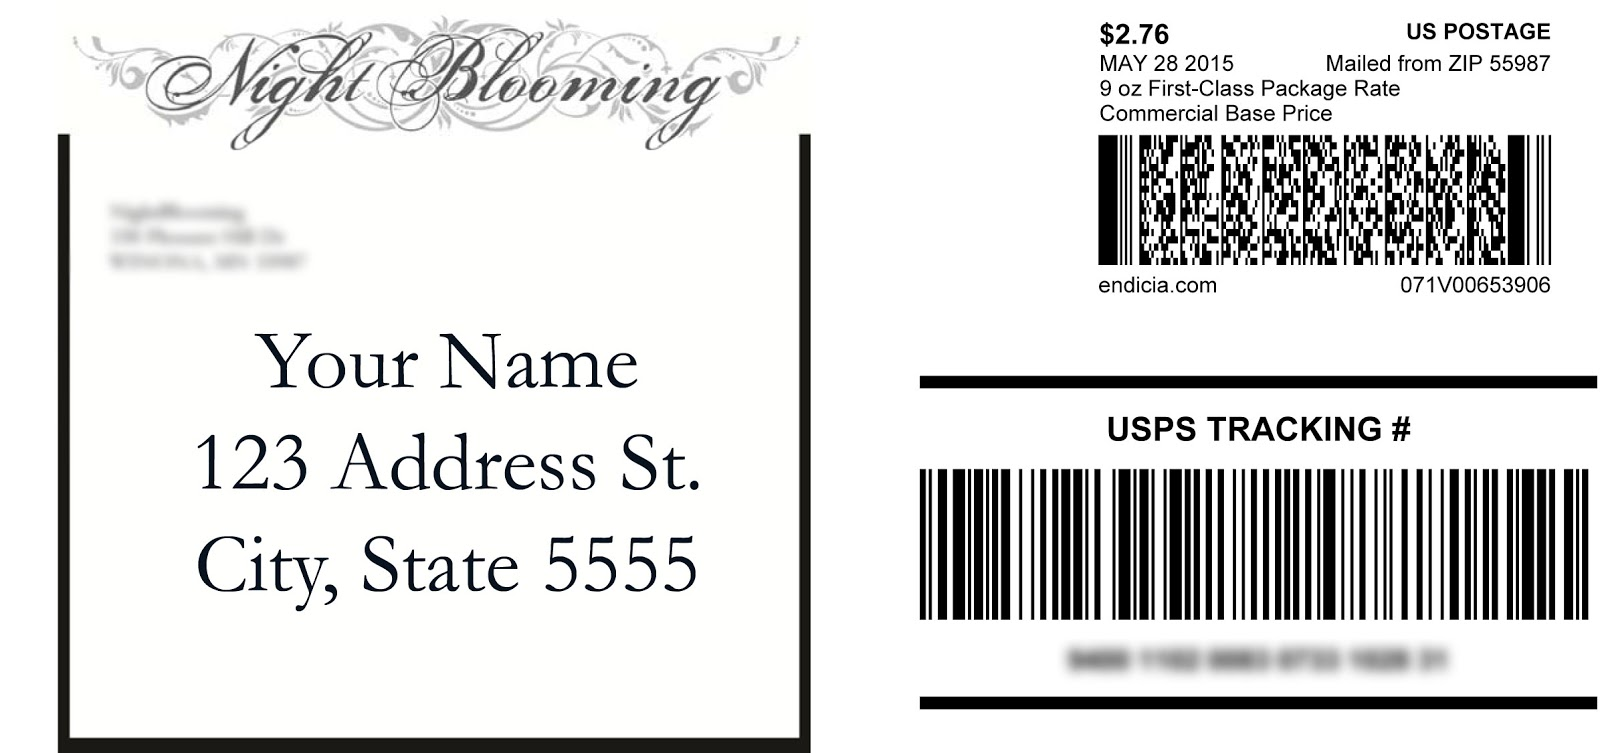 A nightblooming garden calculated shipping new shipping for Homemade shipping label